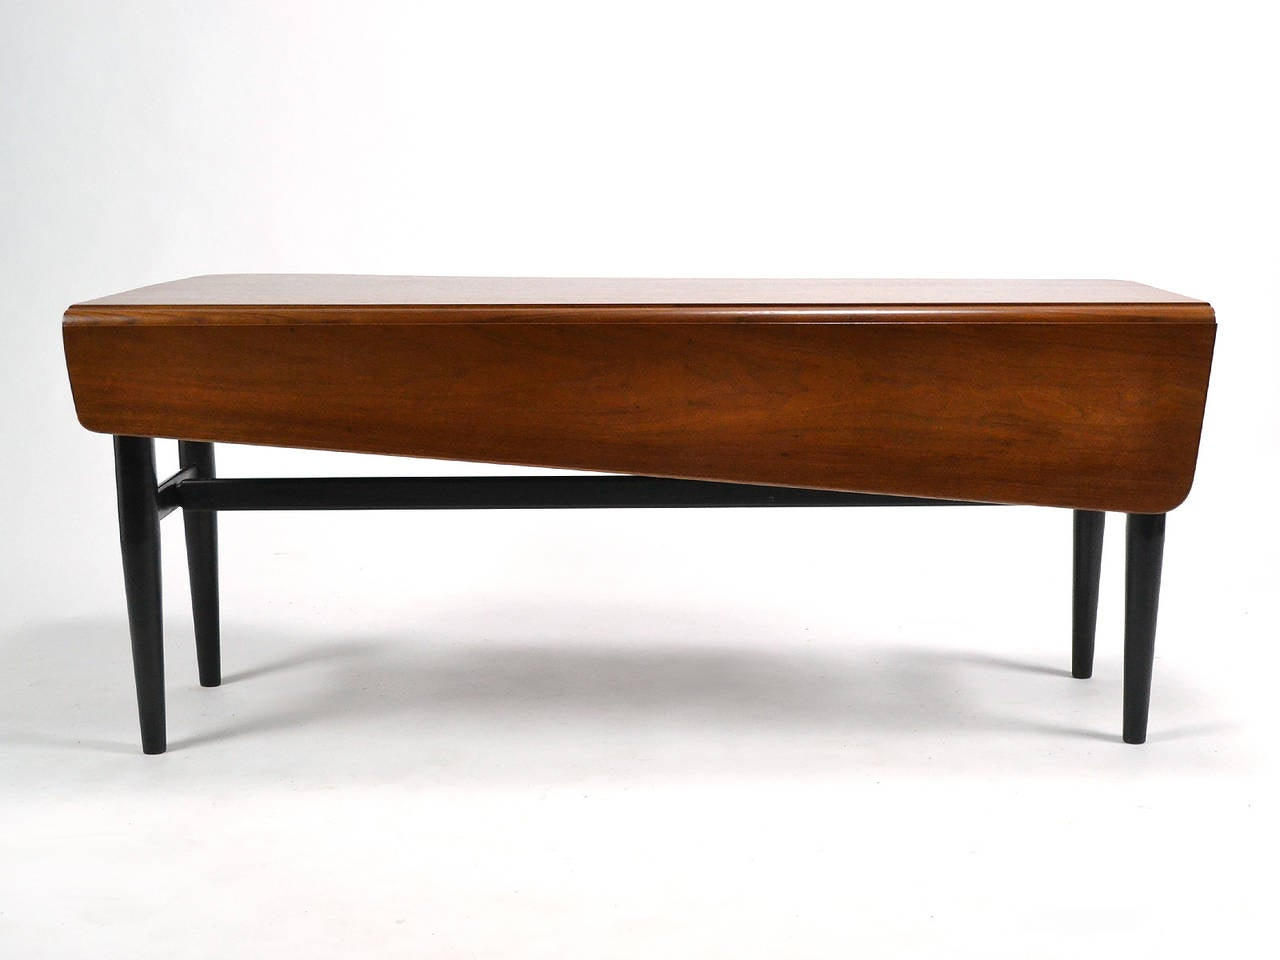 This terrific example of Finn Juhl's unique aesthetic is also a highly functional and versatile table. The walnut top has an asymmetrical shape and a drop leaf on one side. Exquisitely constructed and finely detailed, the cabinetmaker quality